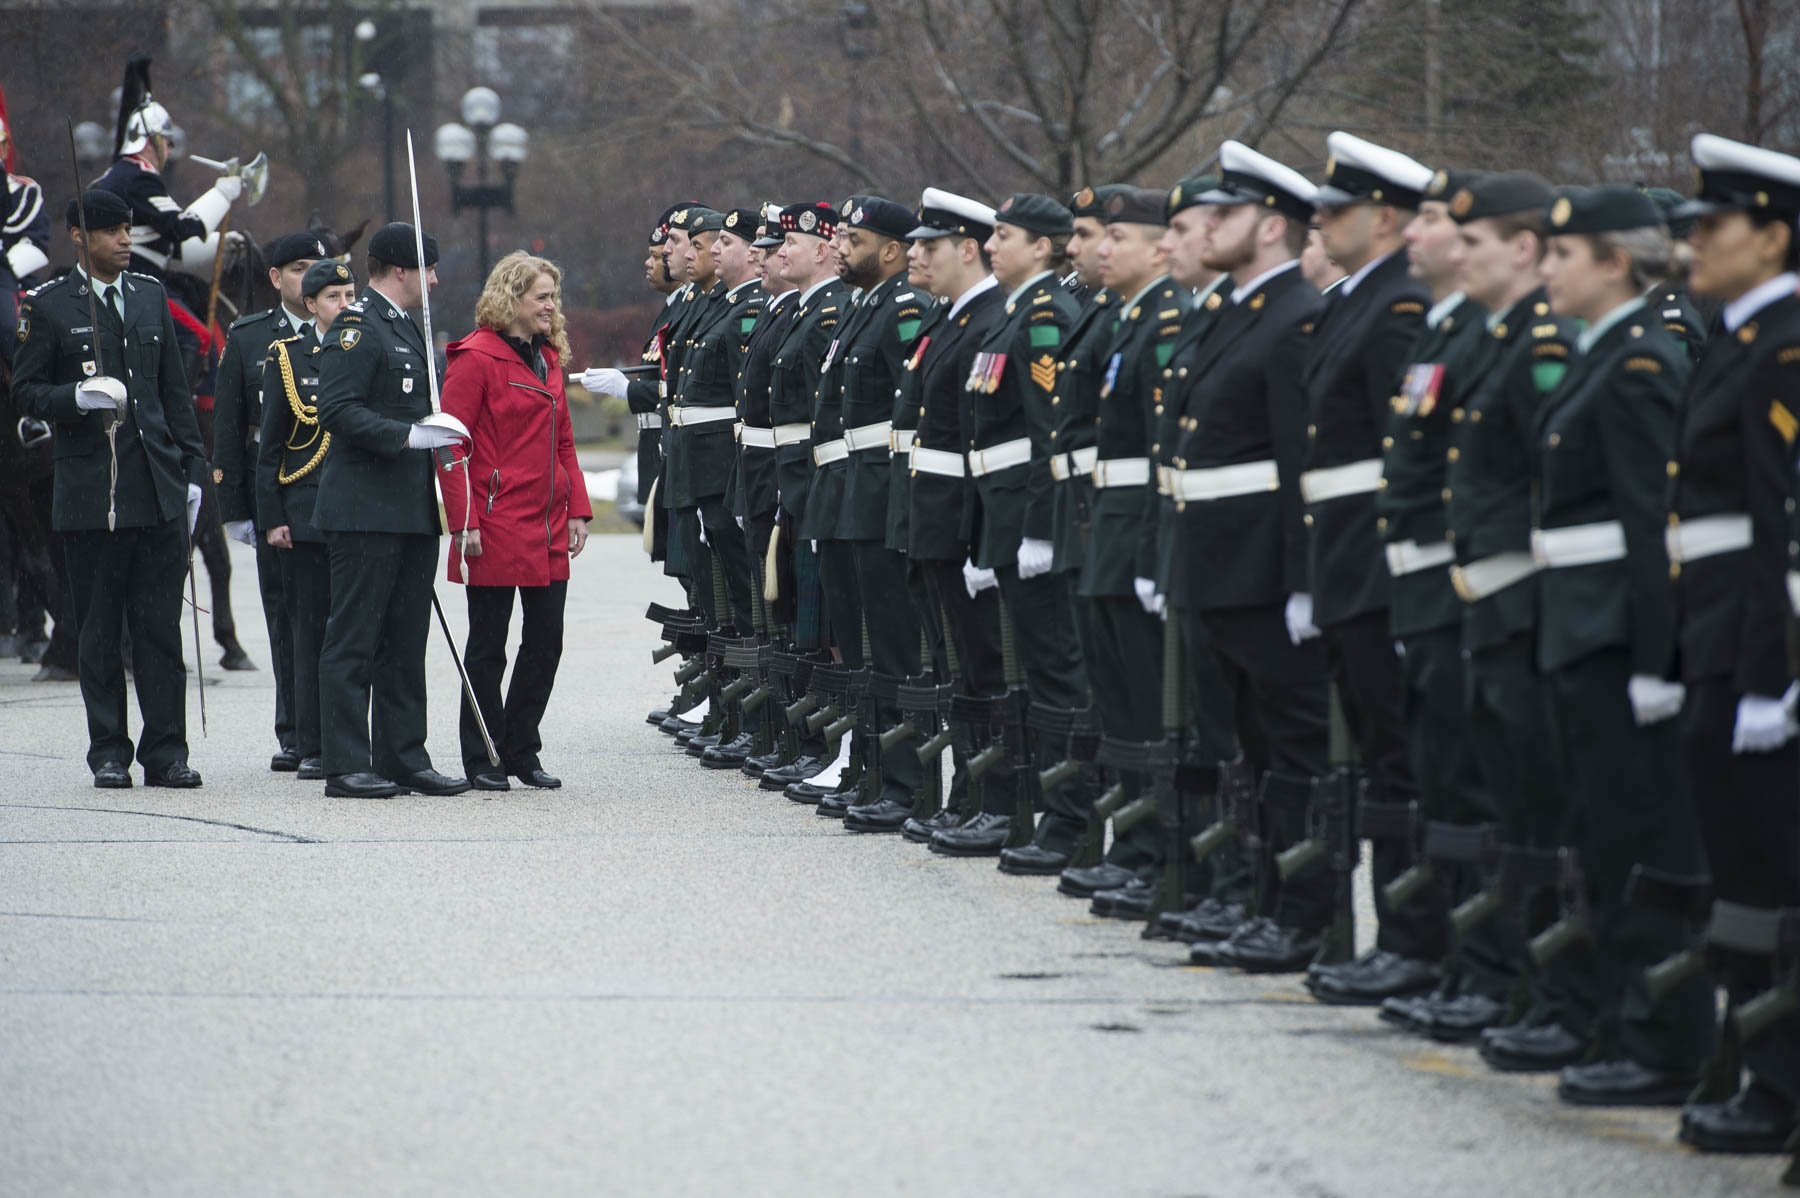 Her Excellency reviewed the 100-person guard of honour.